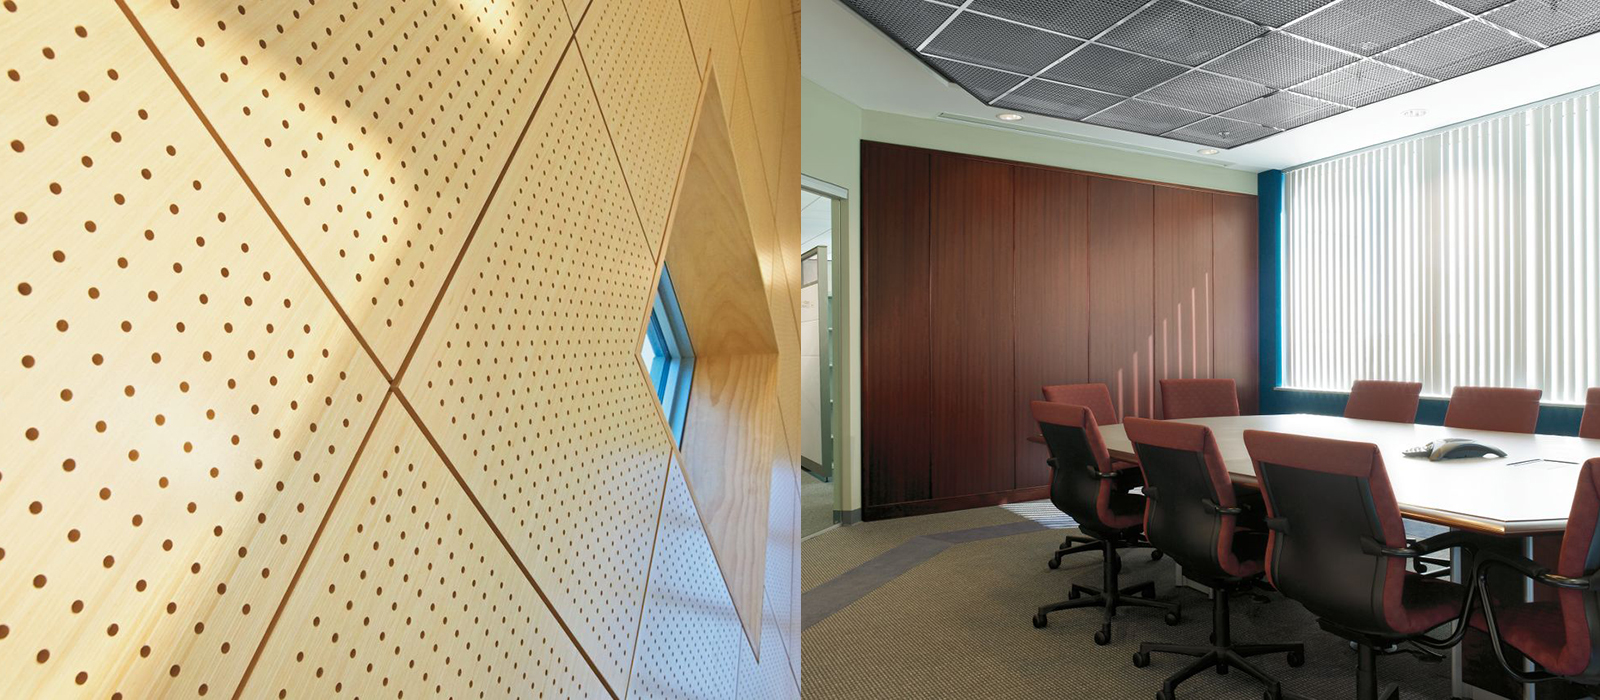 NH MA Acoustic Wall Panels fabrics woods metals translucent walls partitions